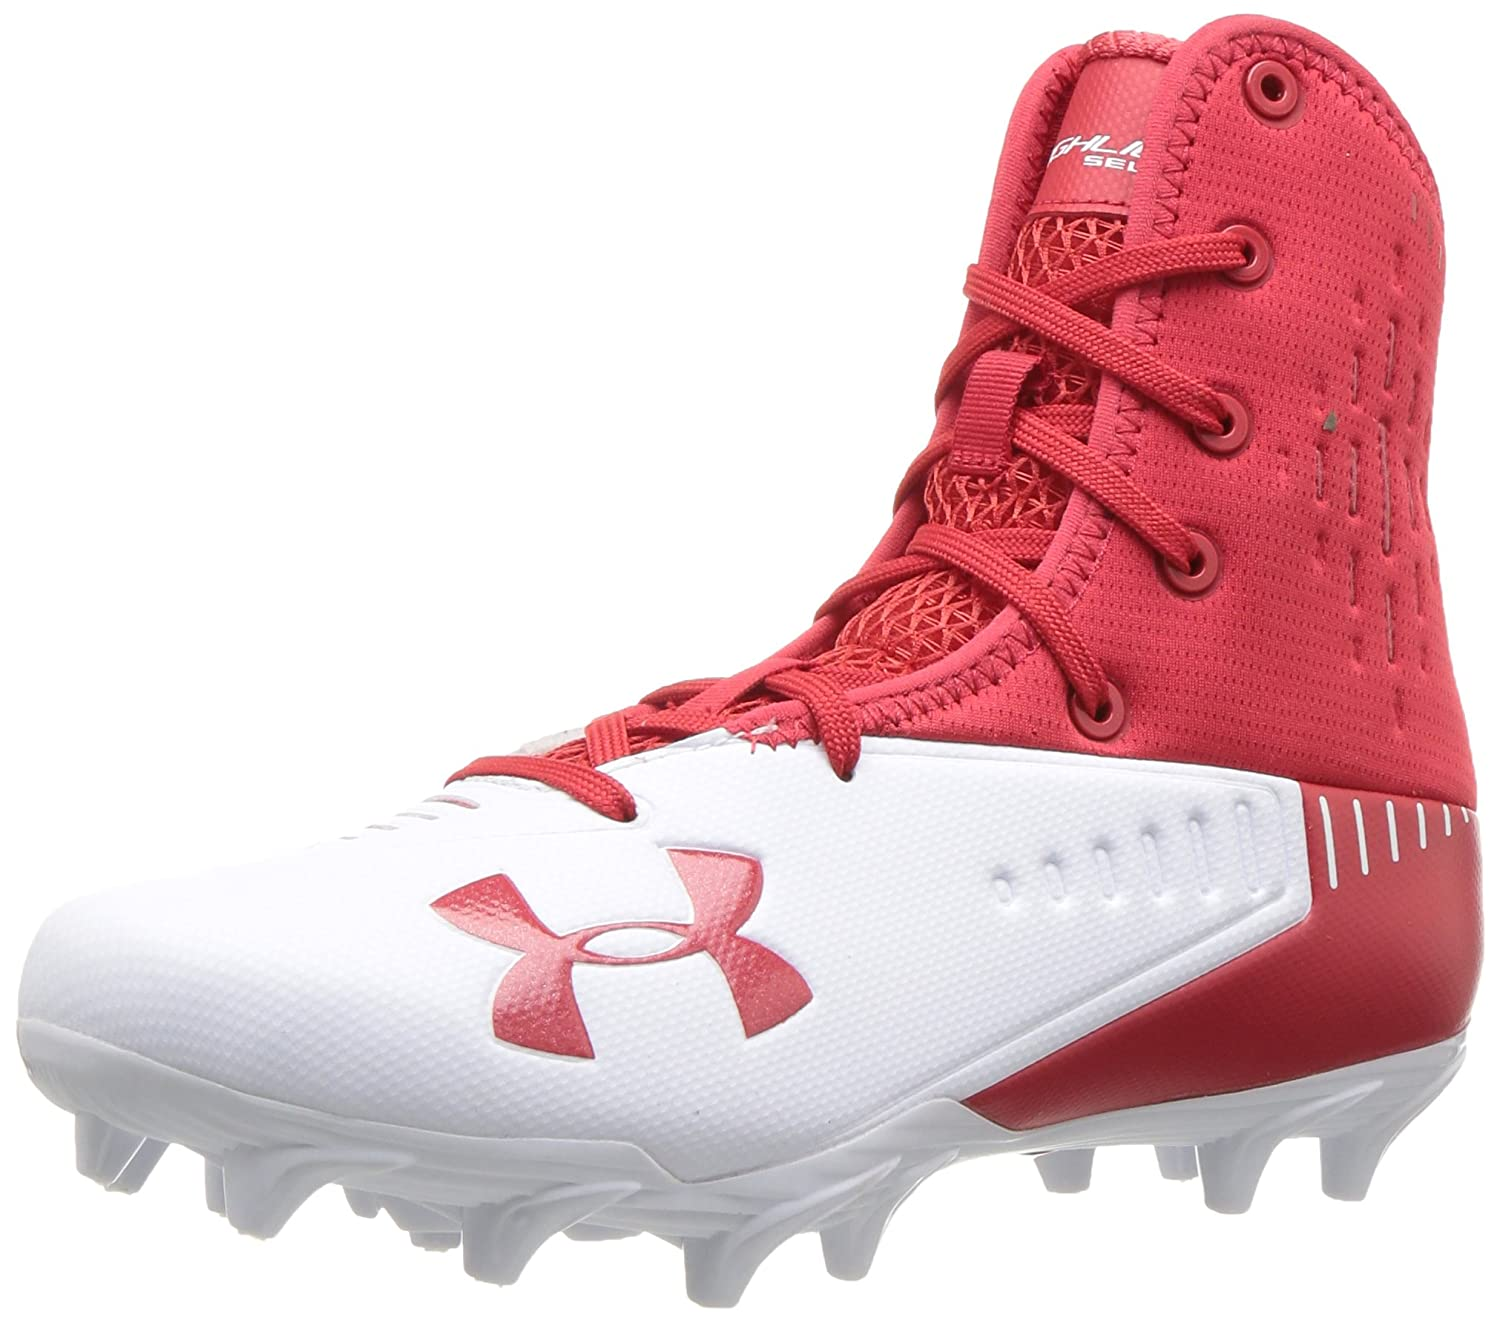 Under Armour Mens Highlight Select MC Football Shoe 7